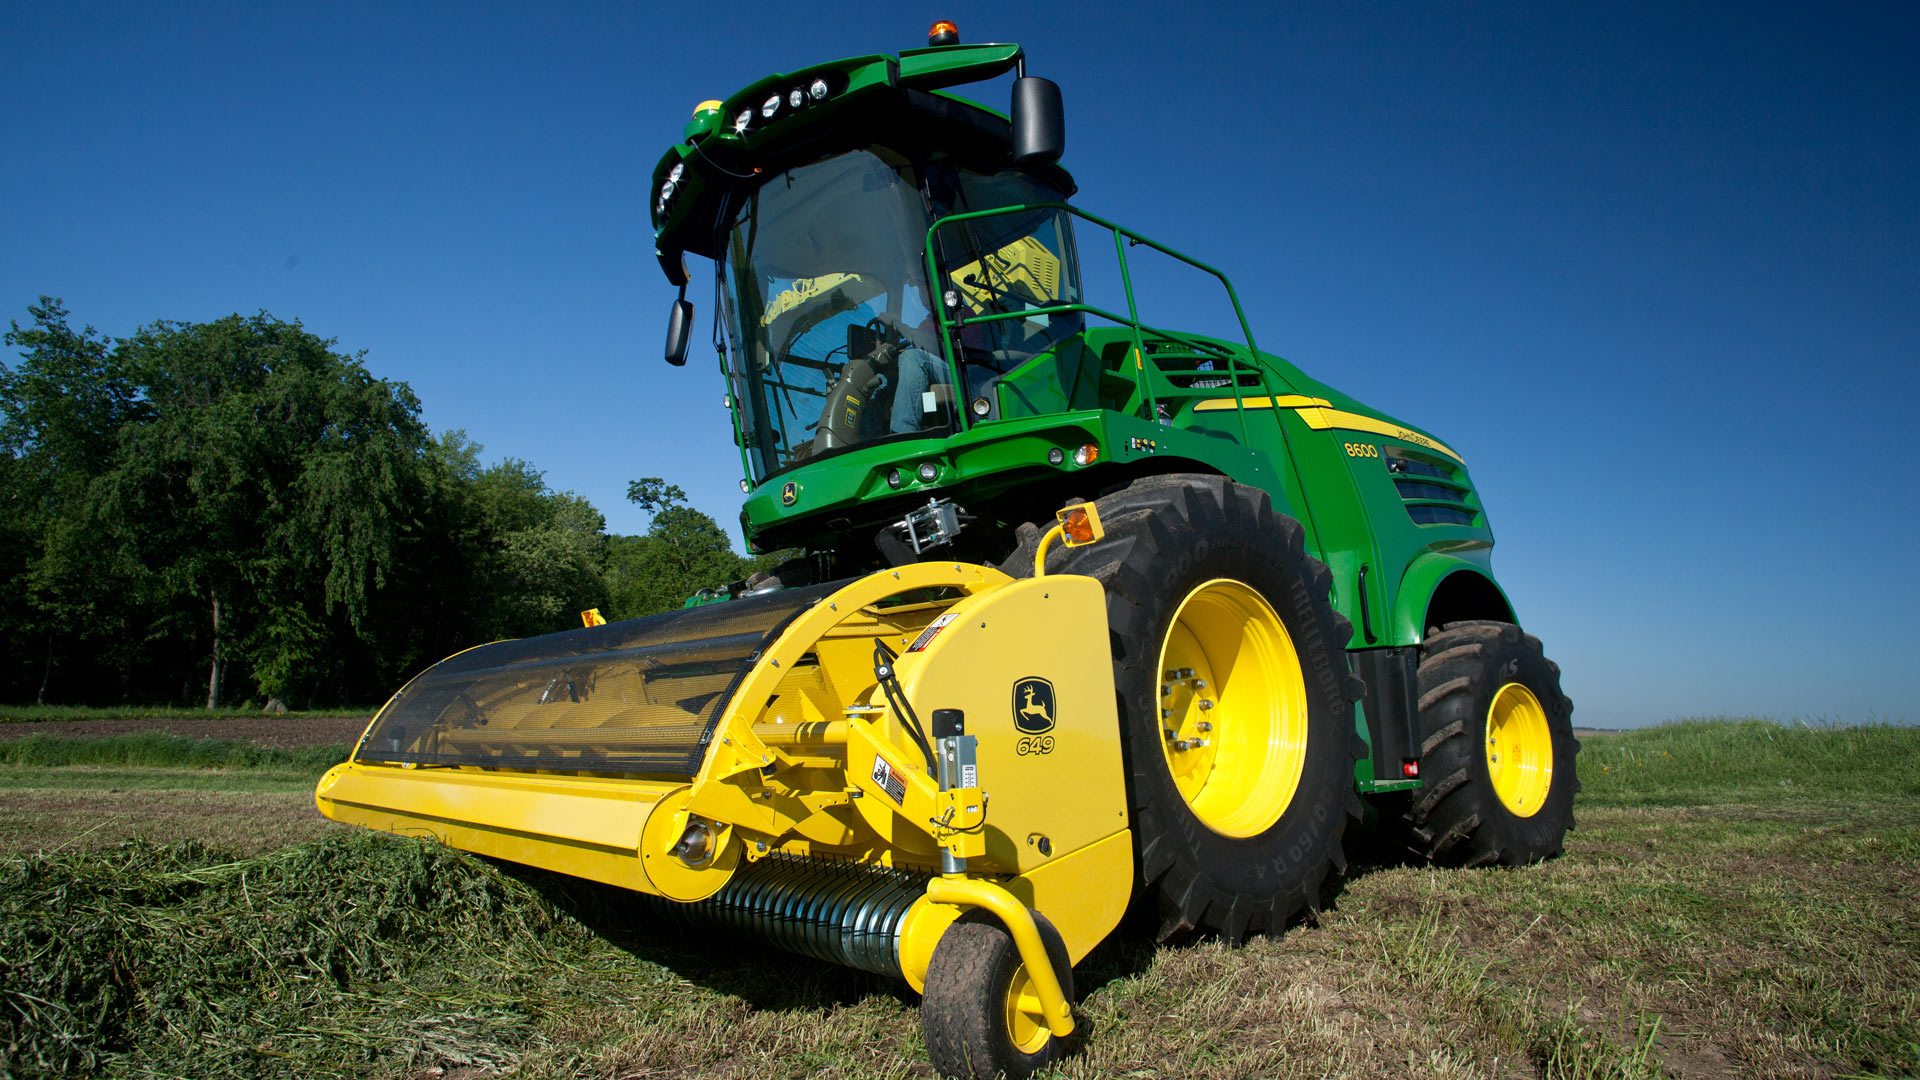 Forage Harvester Pickup photo of machine in field